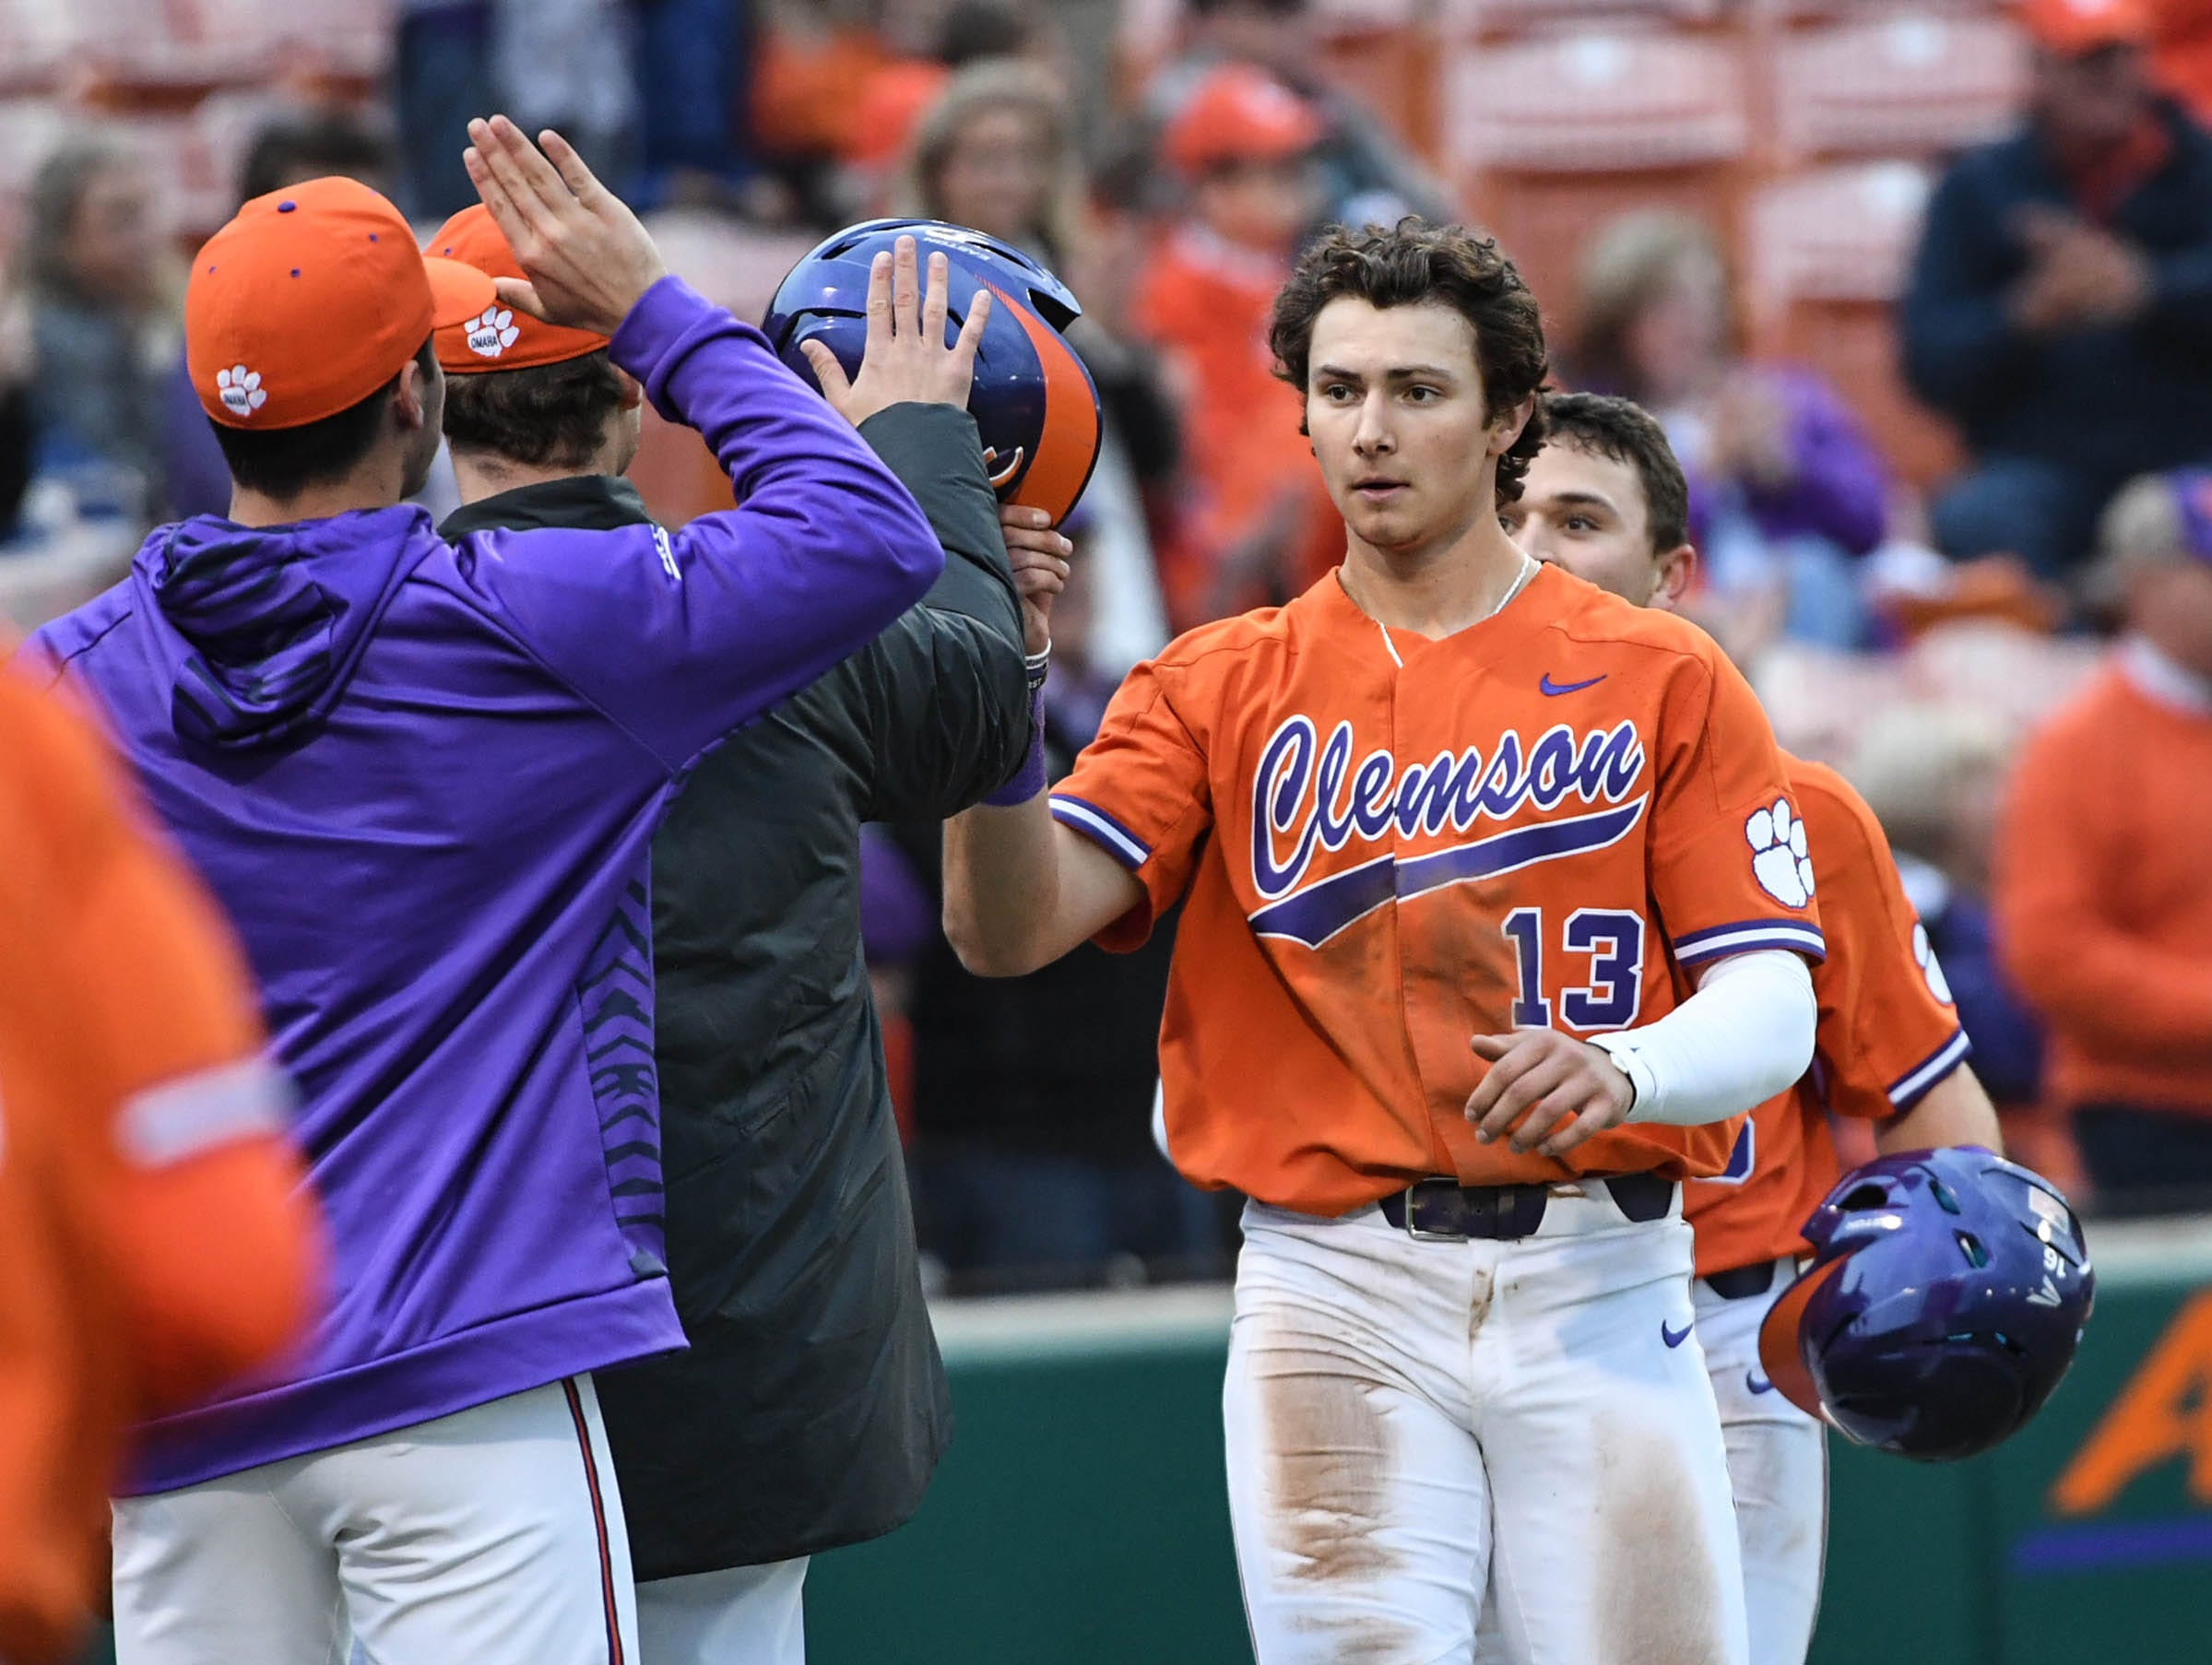 Clemson sophomore Sam Hall(5) single drove in sophomore Bryce Teodosio(13), left, and sophomore Bo Majkowski(16), right, against South Alabama during the bottom of the eighth inning at Doug Kingsmore Stadium in Clemson Friday, February 15, 2019.